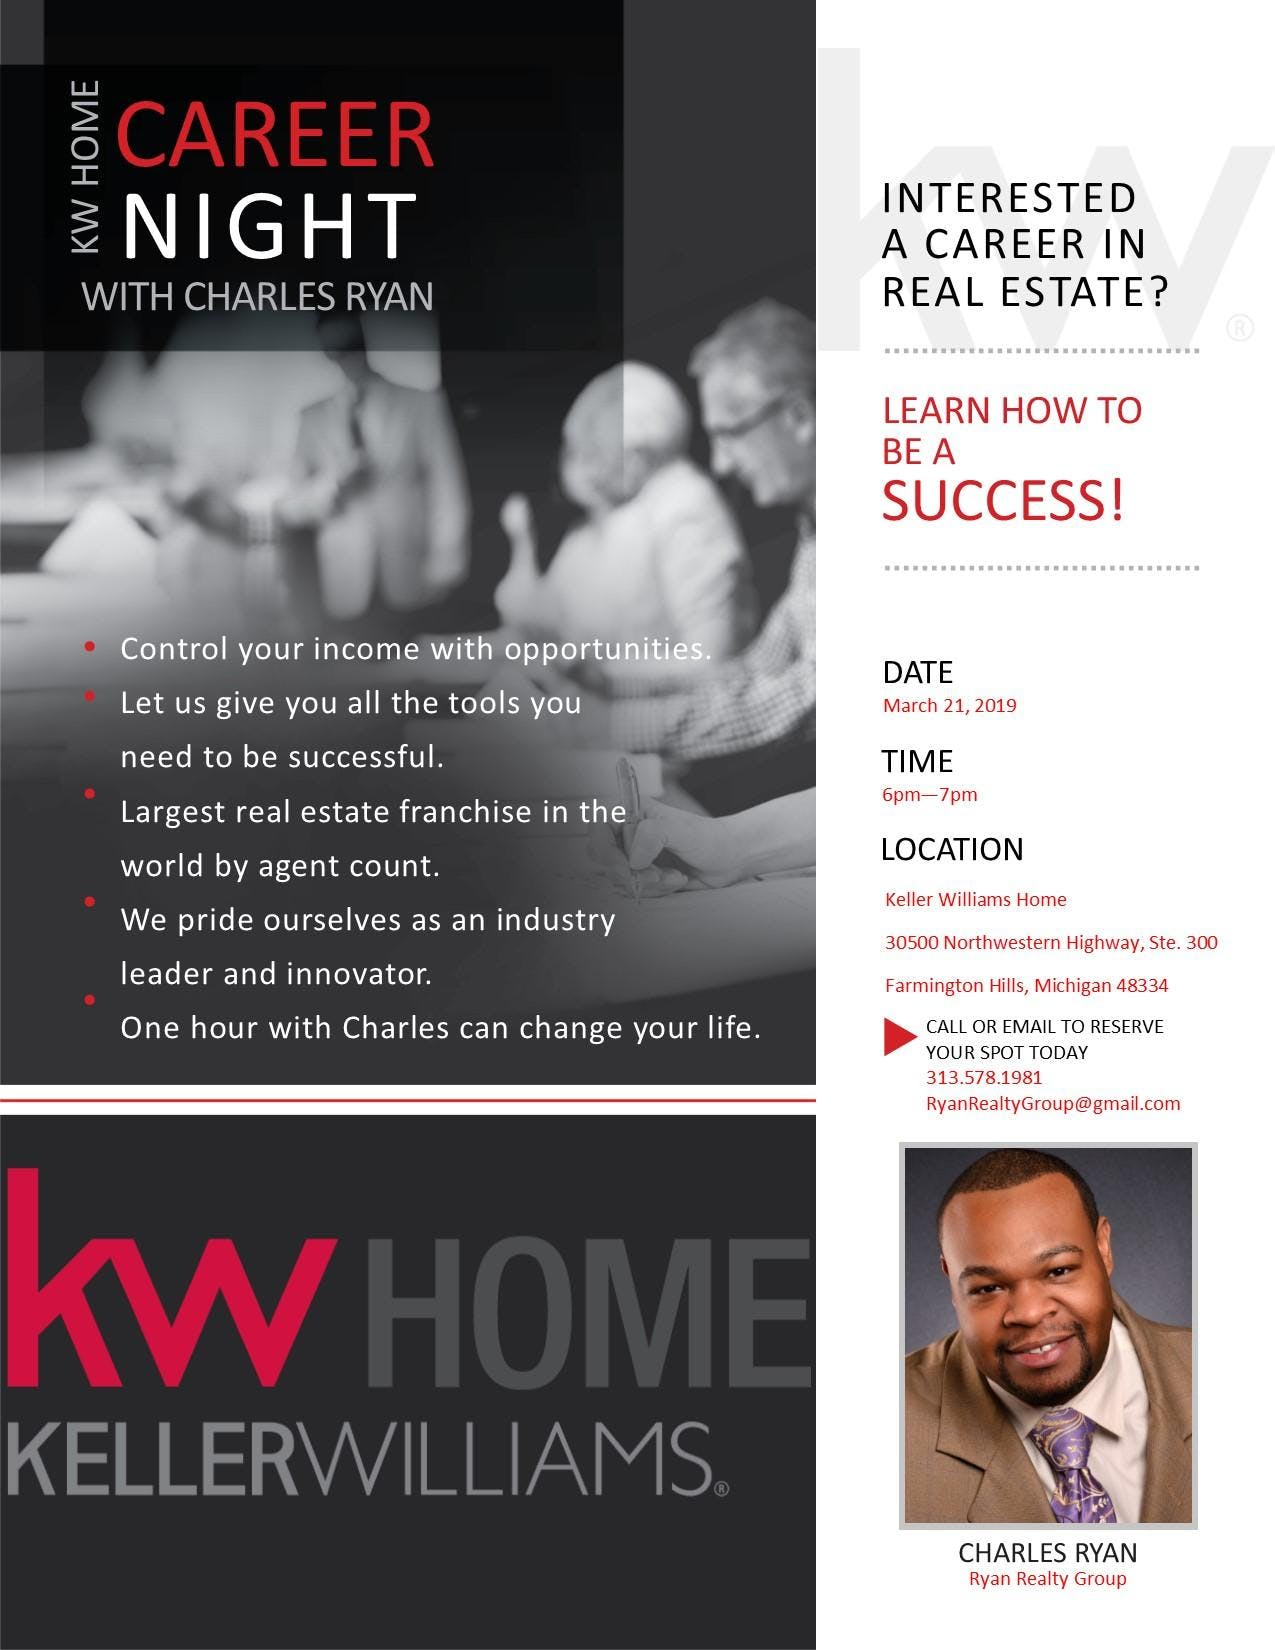 KW Home Career Night with Charles Ryan